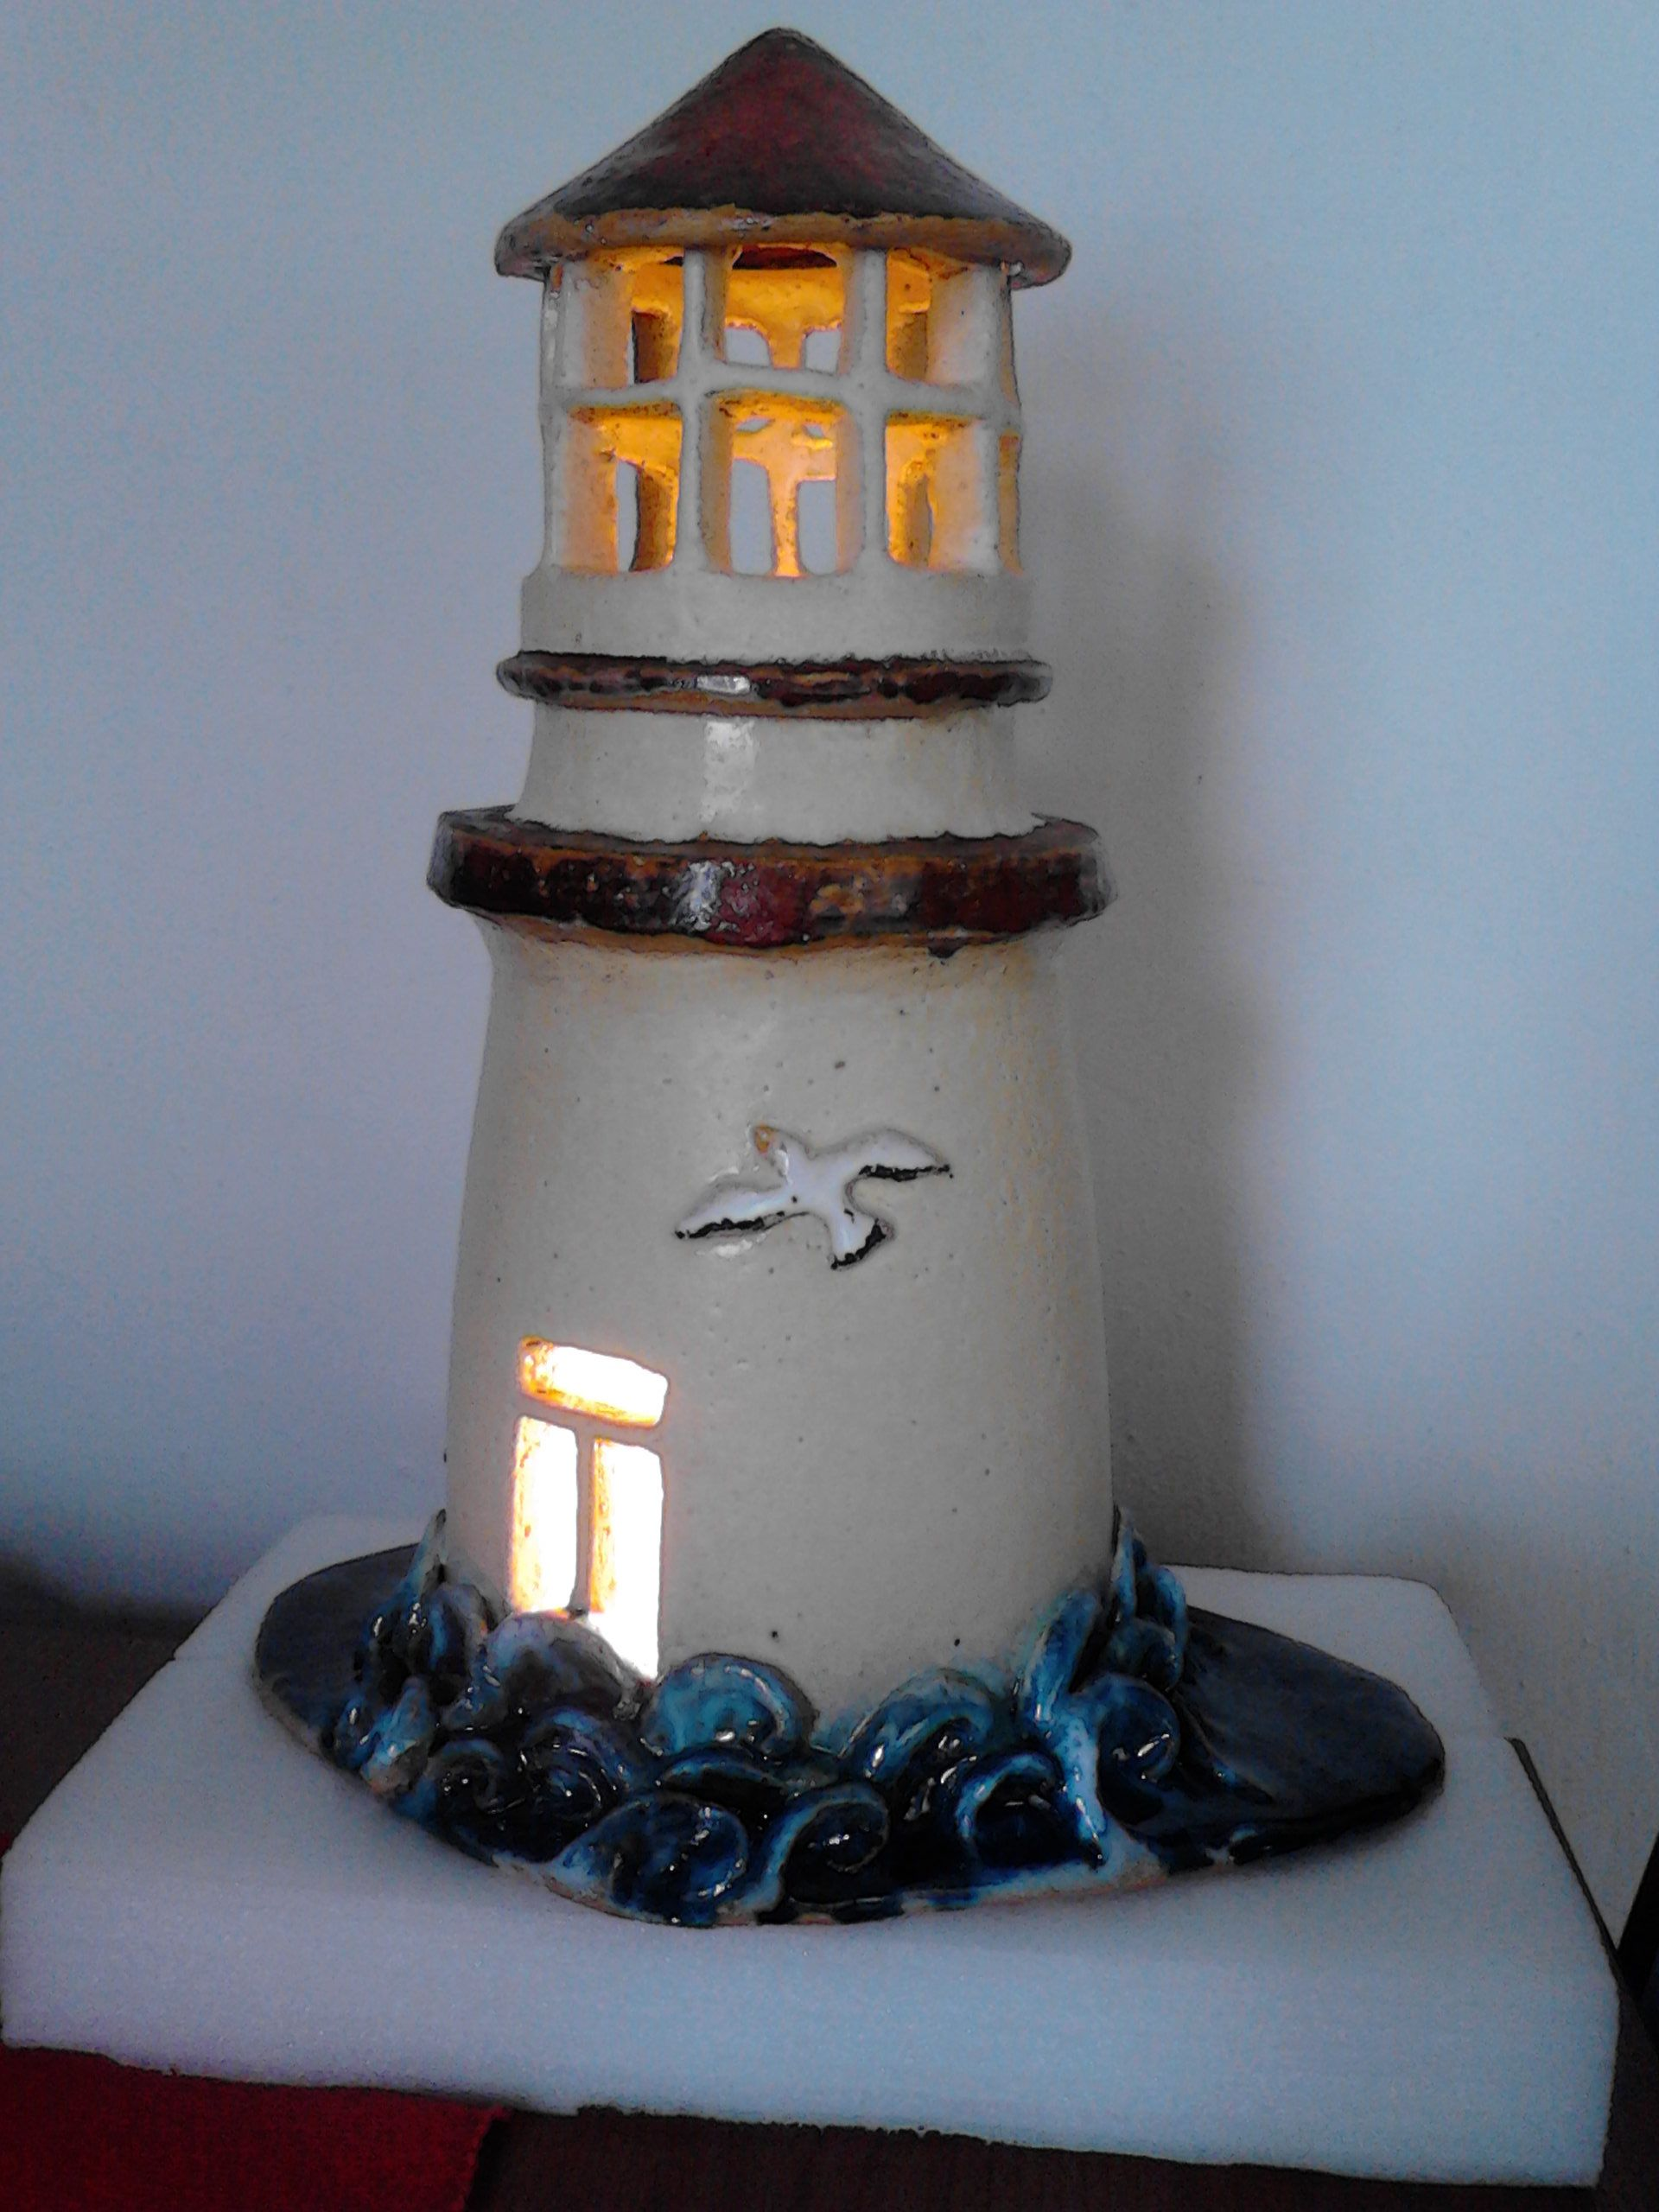 handgemachte leuchtturm lampe aus keramik handmade ceramic lighthouse lamp el yap m se. Black Bedroom Furniture Sets. Home Design Ideas